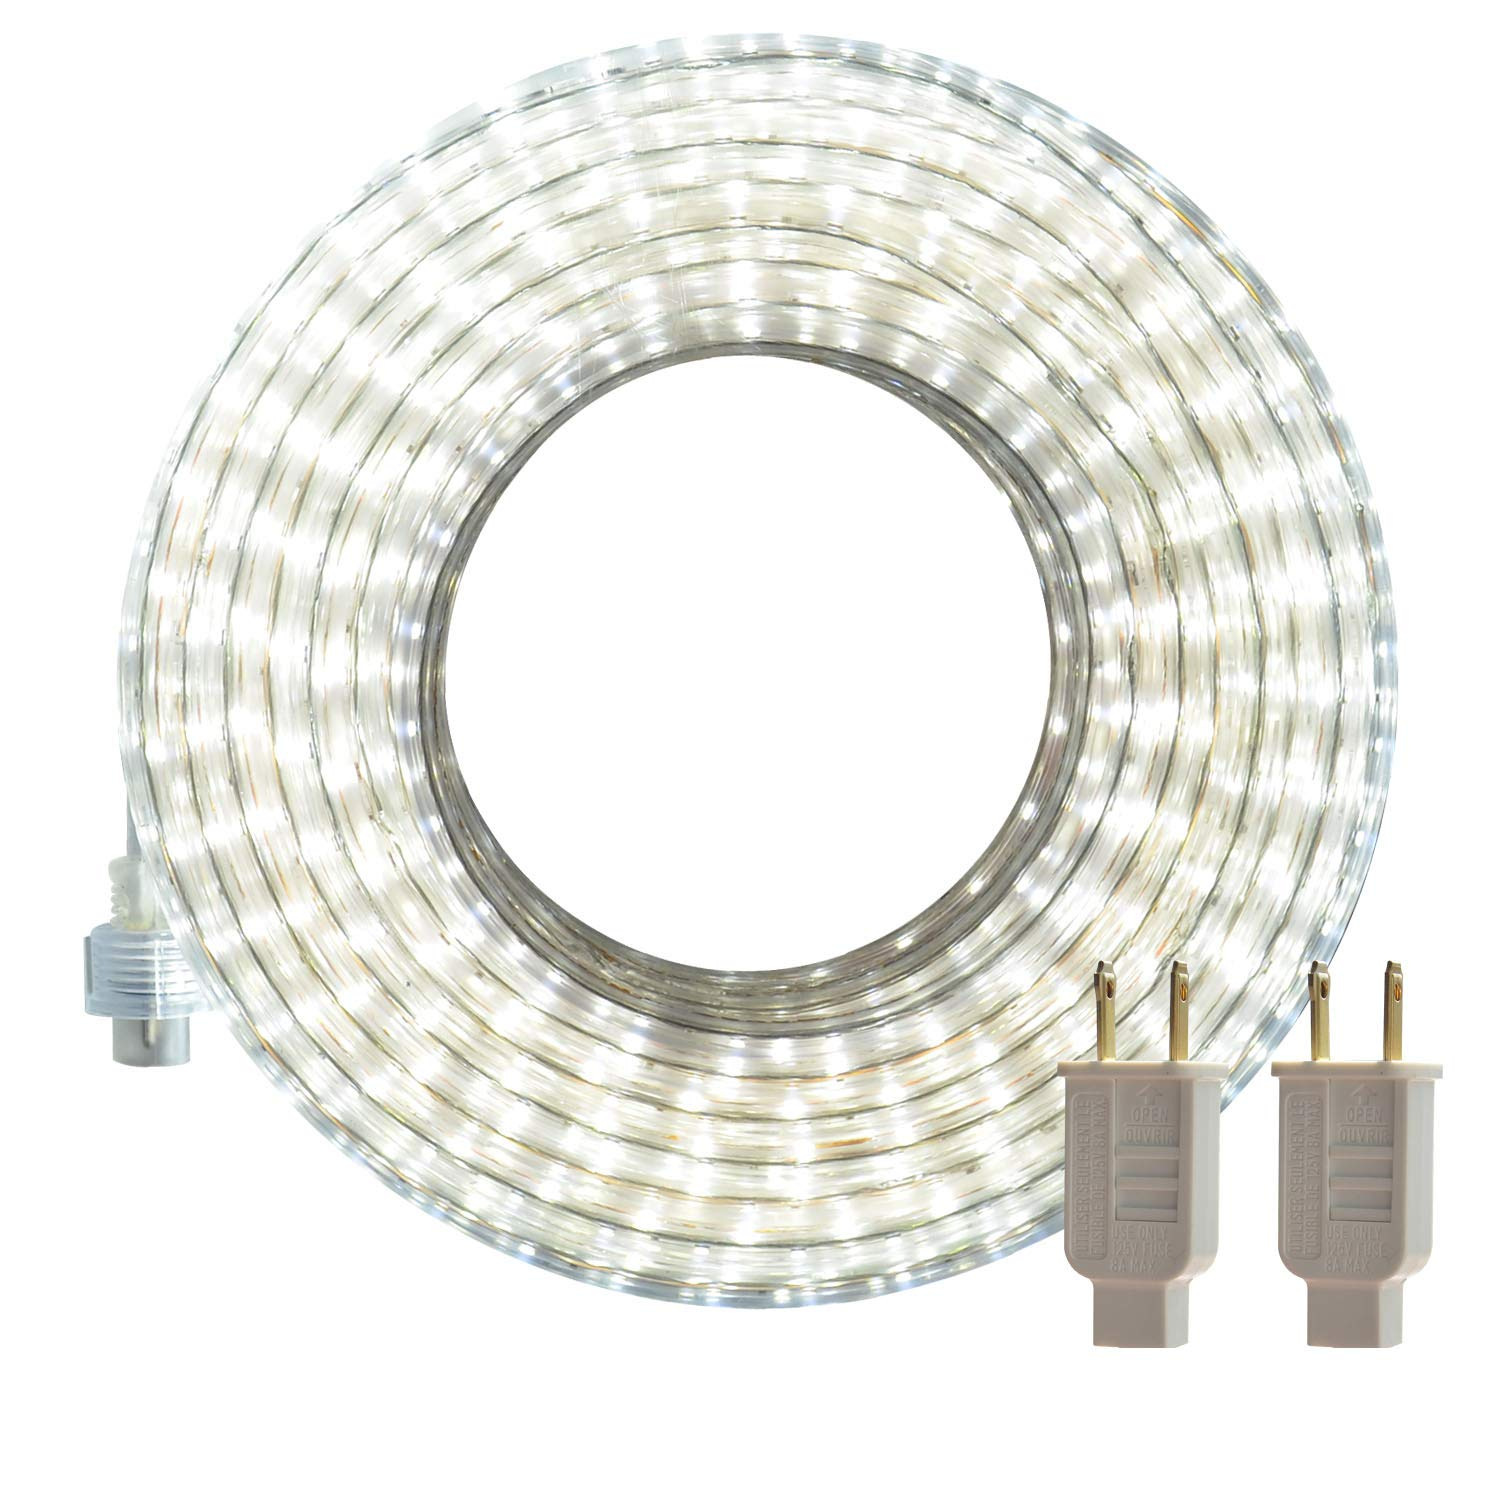 LED Rope Lights, 50ft Flat Flexible Light Strip, 6000K Daylight White, Water Resistant for Both Indoor/Outdoor Use, Inter-Connectable, UL Certified, Decorative Lighting for Any Location DW by SURNIE